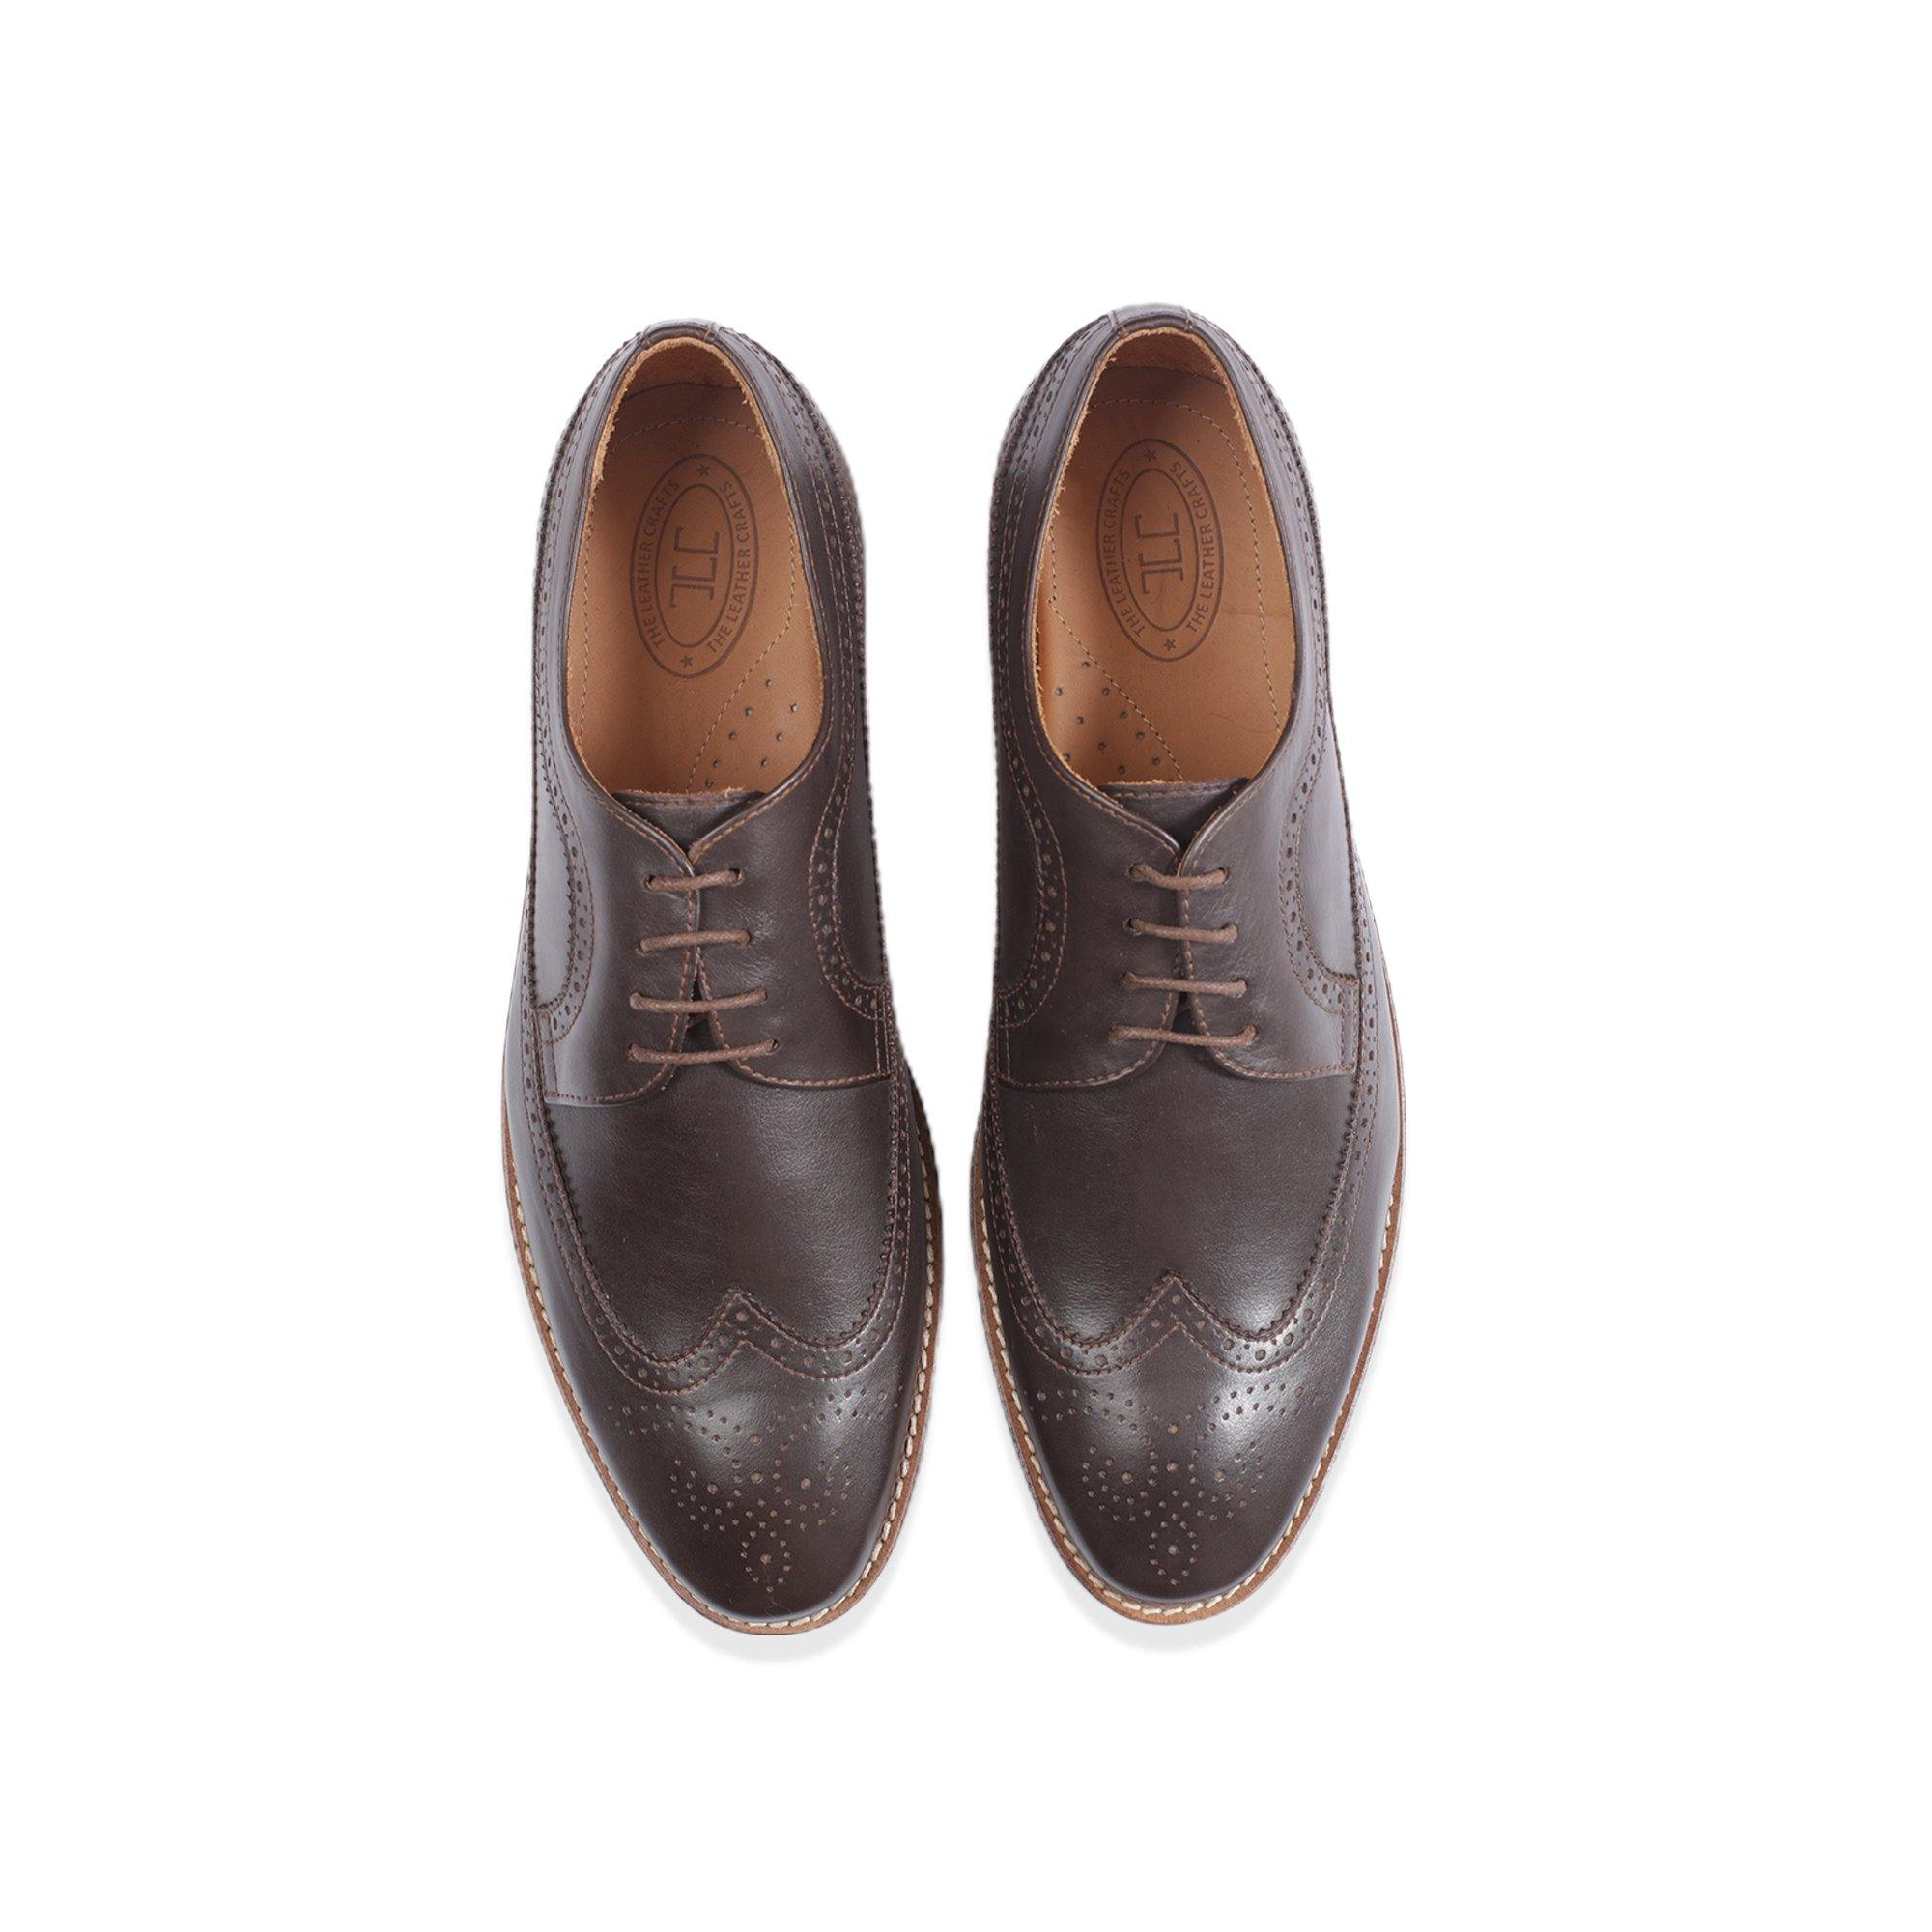 Casa - Wingtip Derby in Tobacco - TLC - The Leather Crafts